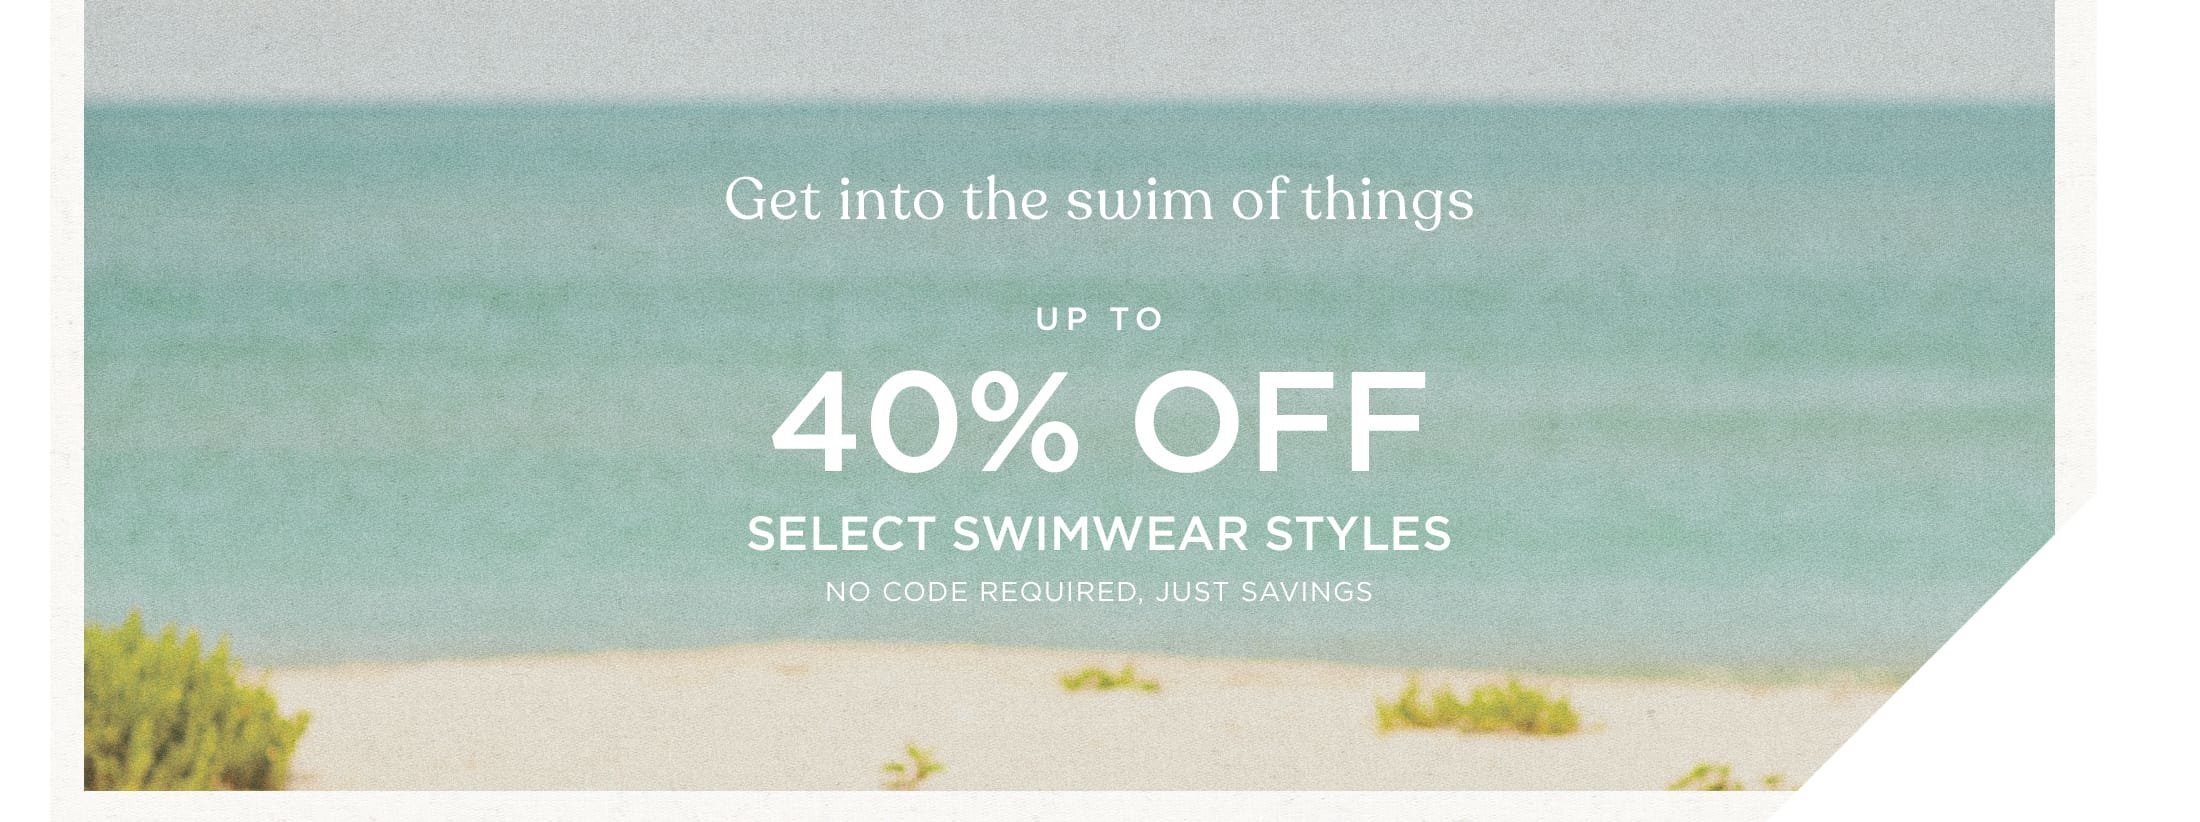 Up to 40% off select swimwear styles no code required.